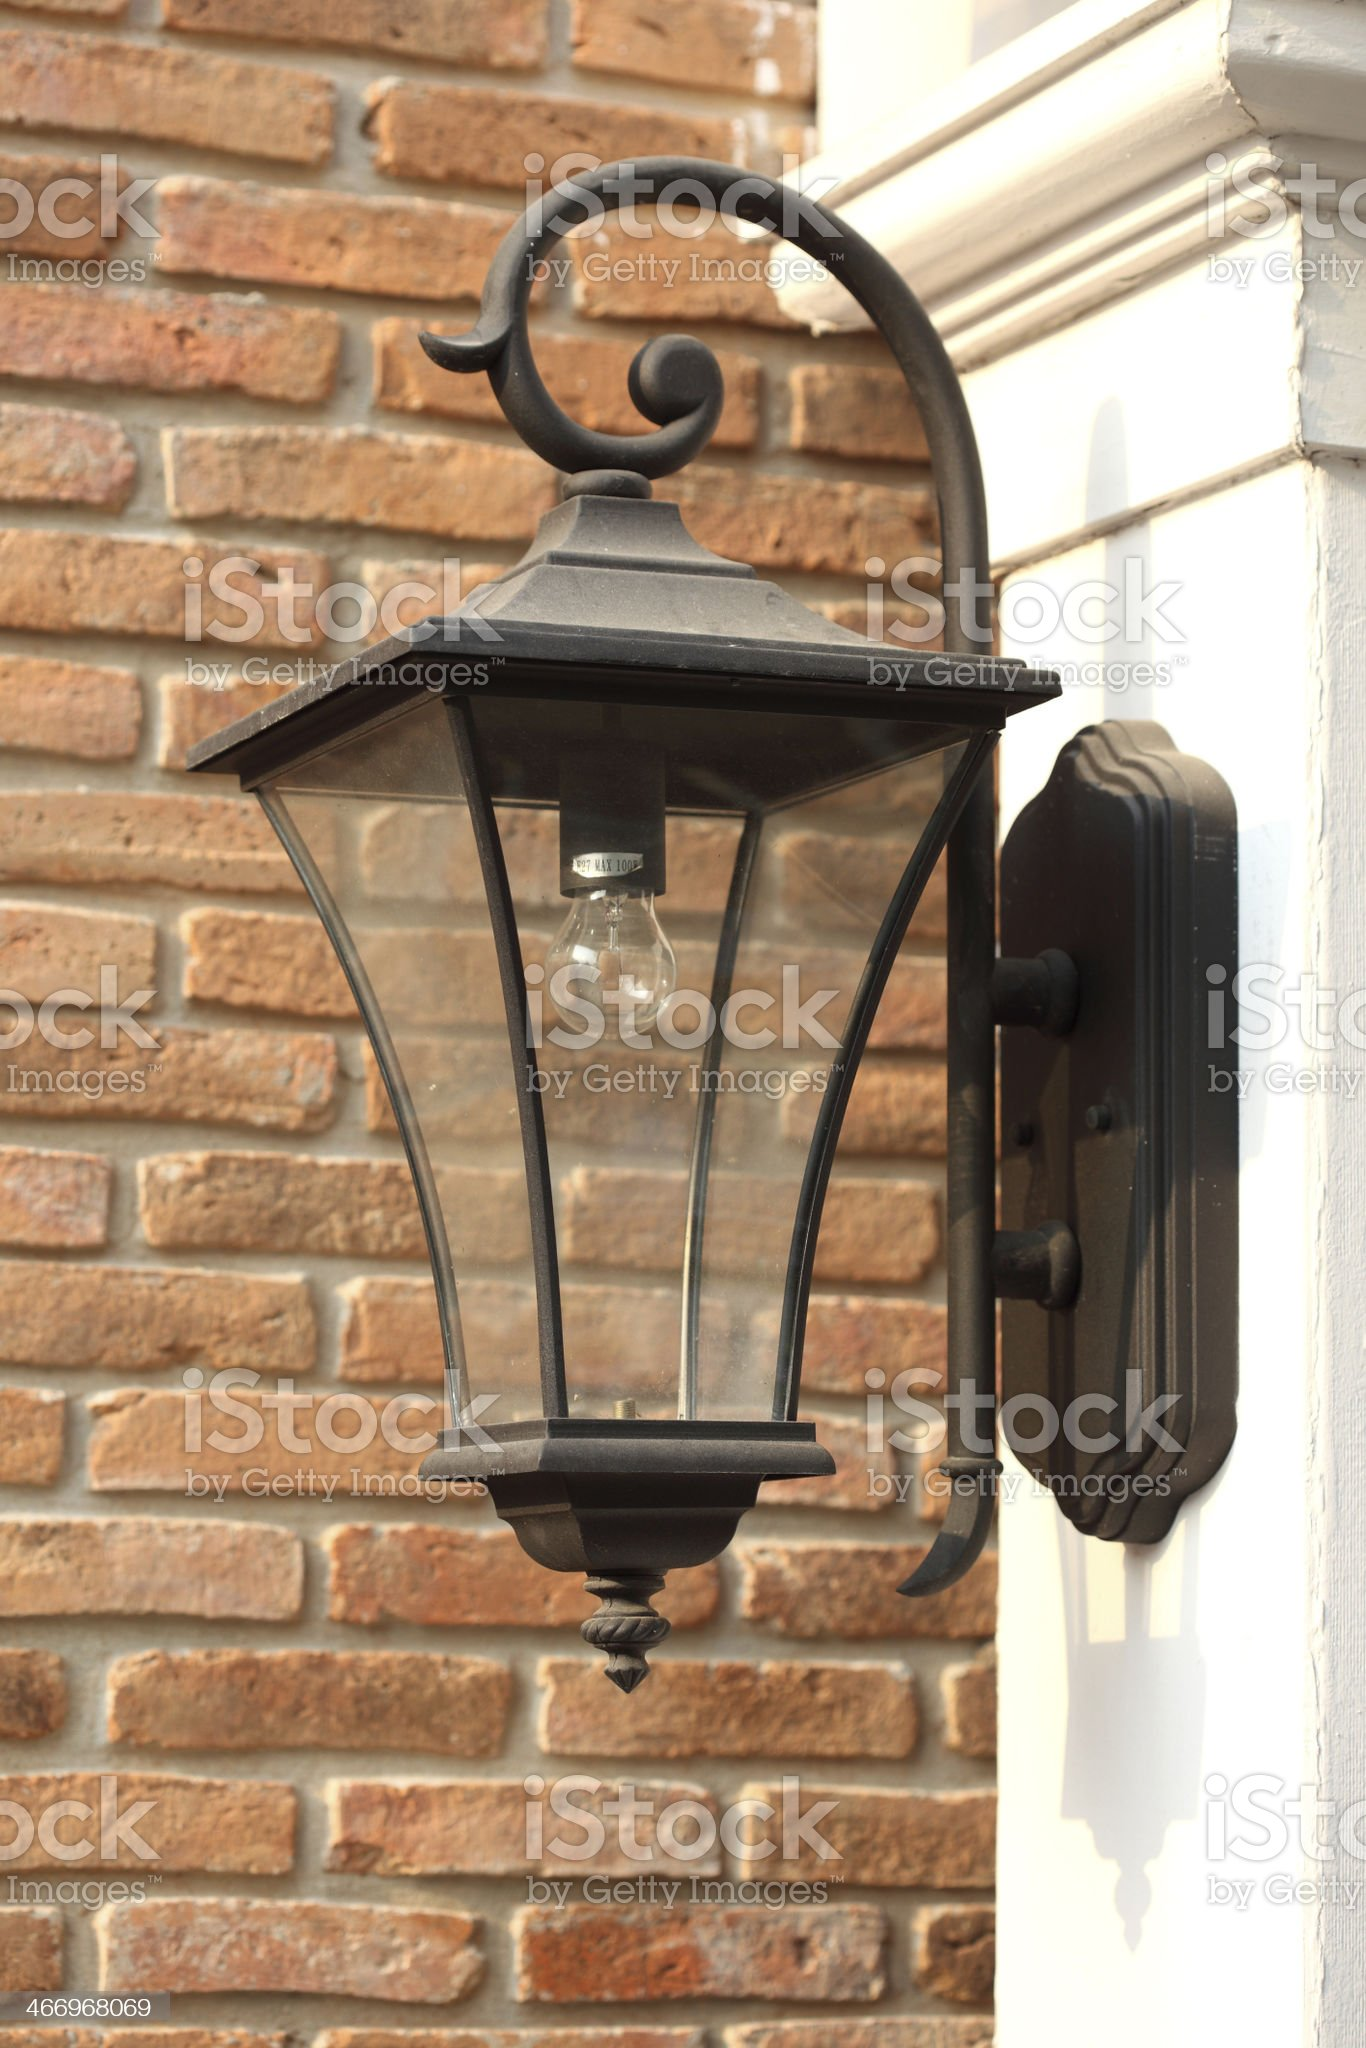 Antique Victorian Outdoor Wall Lamp royalty-free stock photo